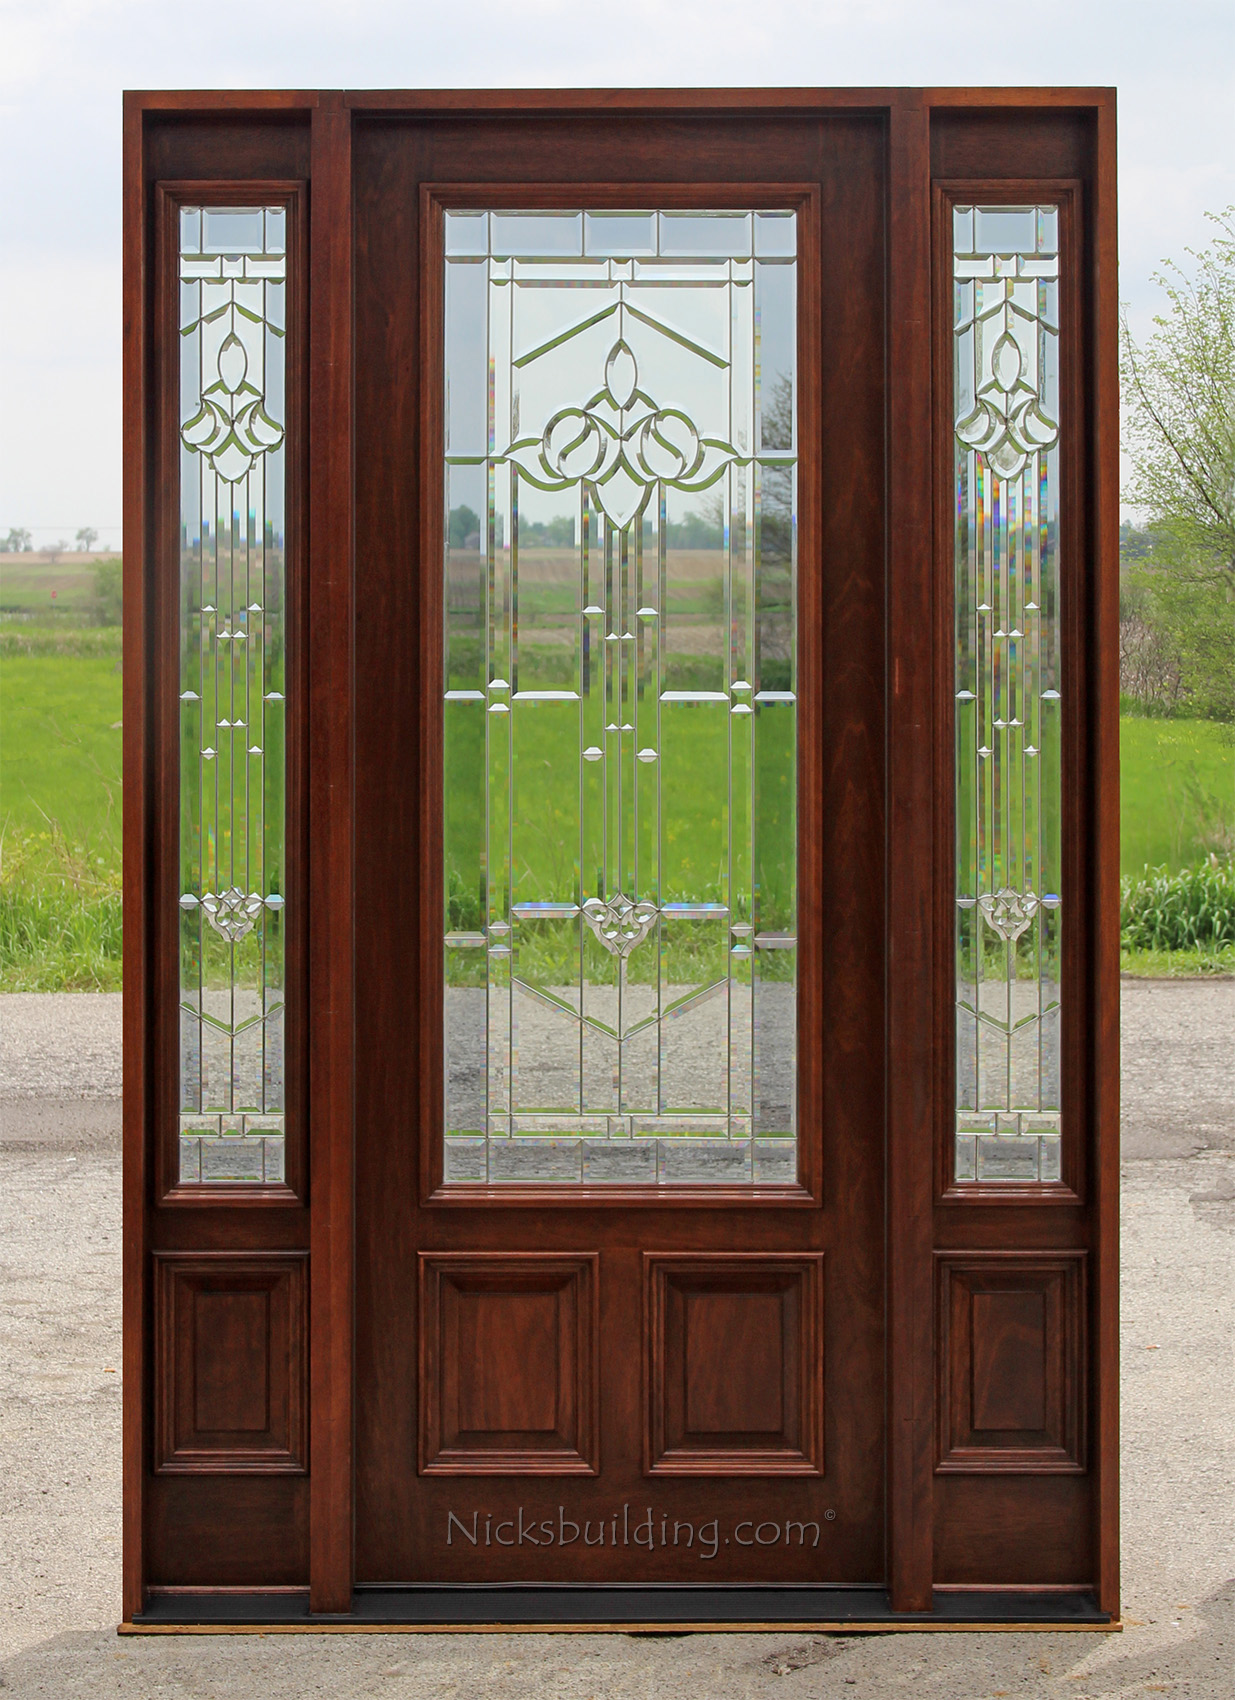 1700 #653424 Exterior Doors With Sidelites 8' 0 Solid Mahogany Doors wallpaper Entry Doors With Sidelites 38851235